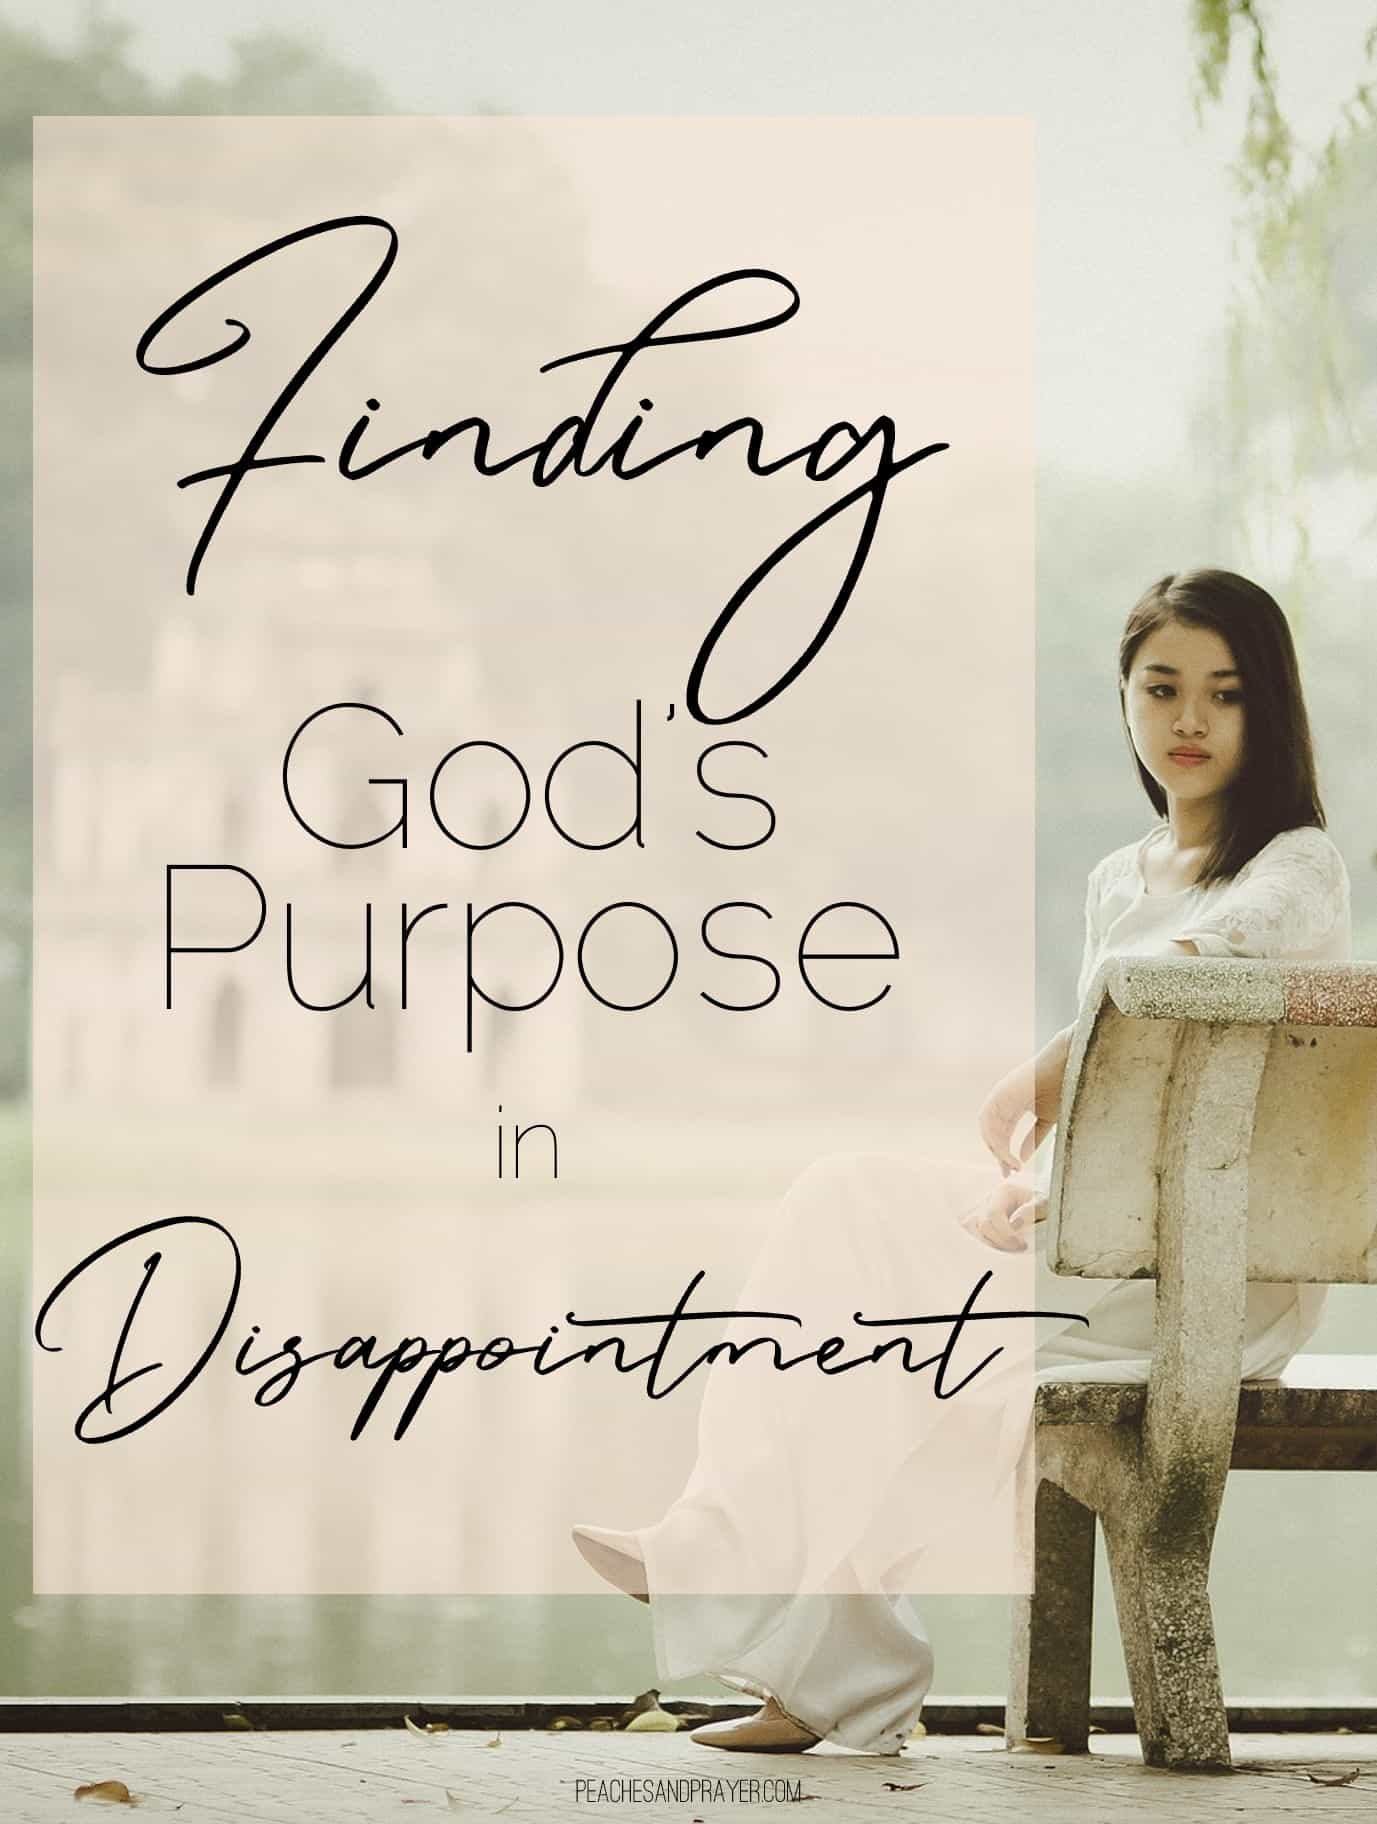 Dealing with Disappointment as a Christian